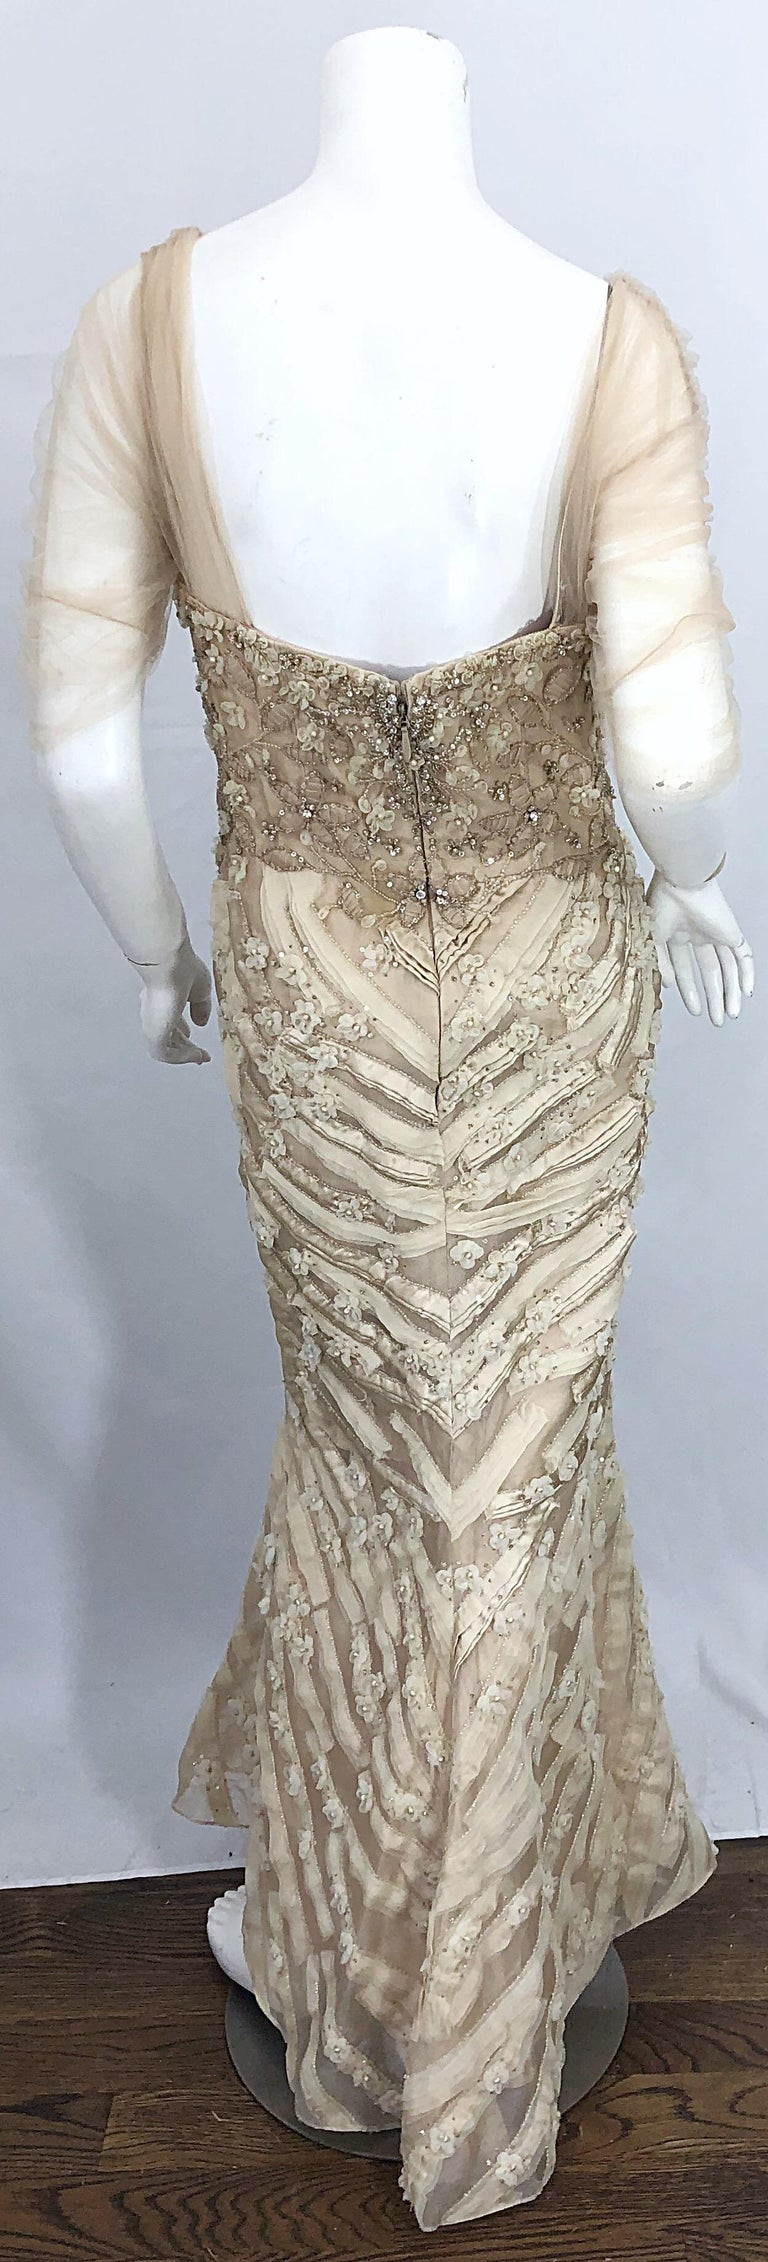 Monique Lhuillier Couture Size 10 / 12 Beige Rhinestone Beaded $12,000 Silk Gown For Sale 5